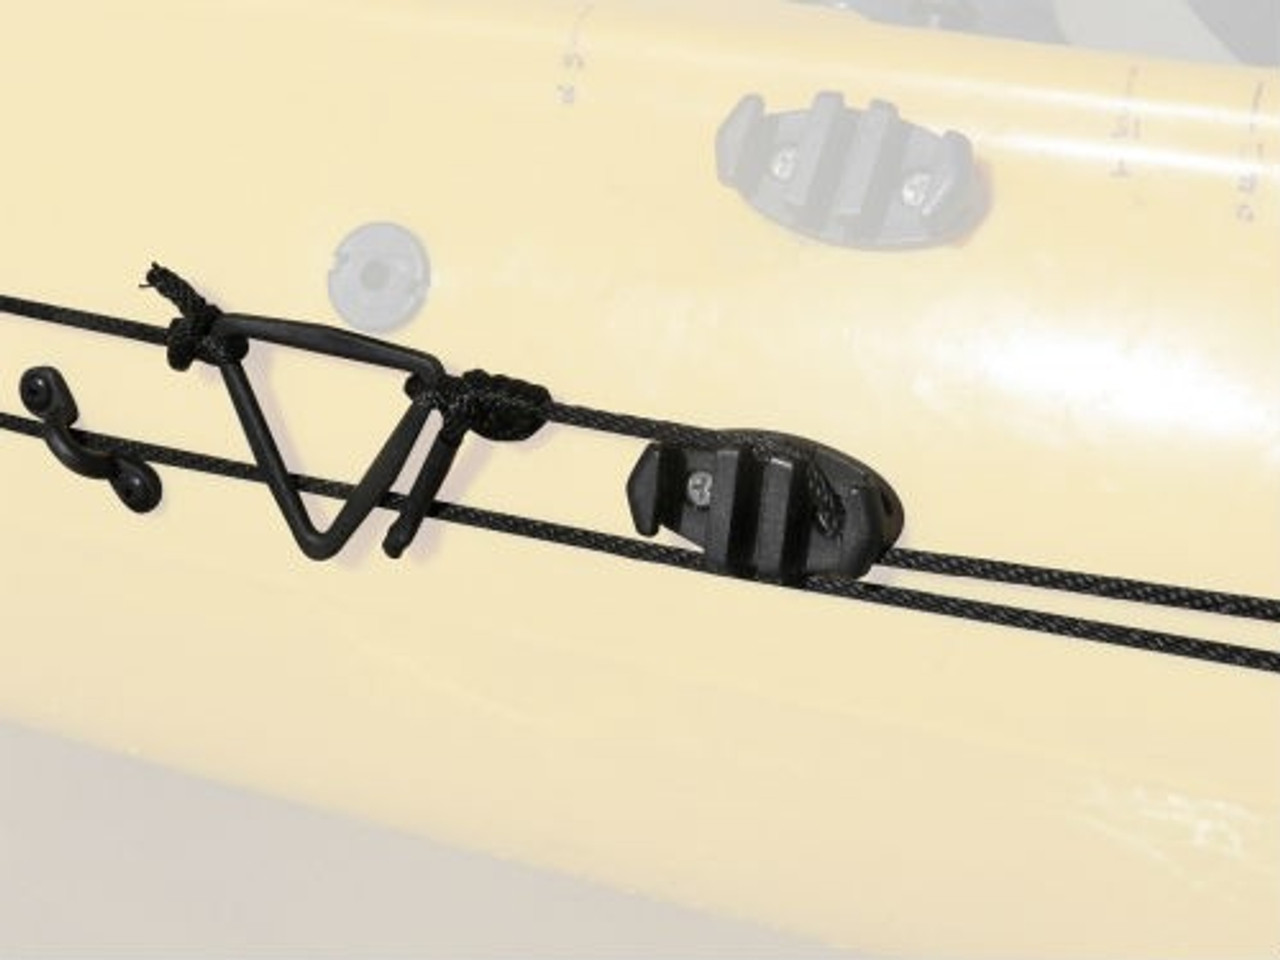 Deluxe Anchor Trolley Kit Pulley System Rigging